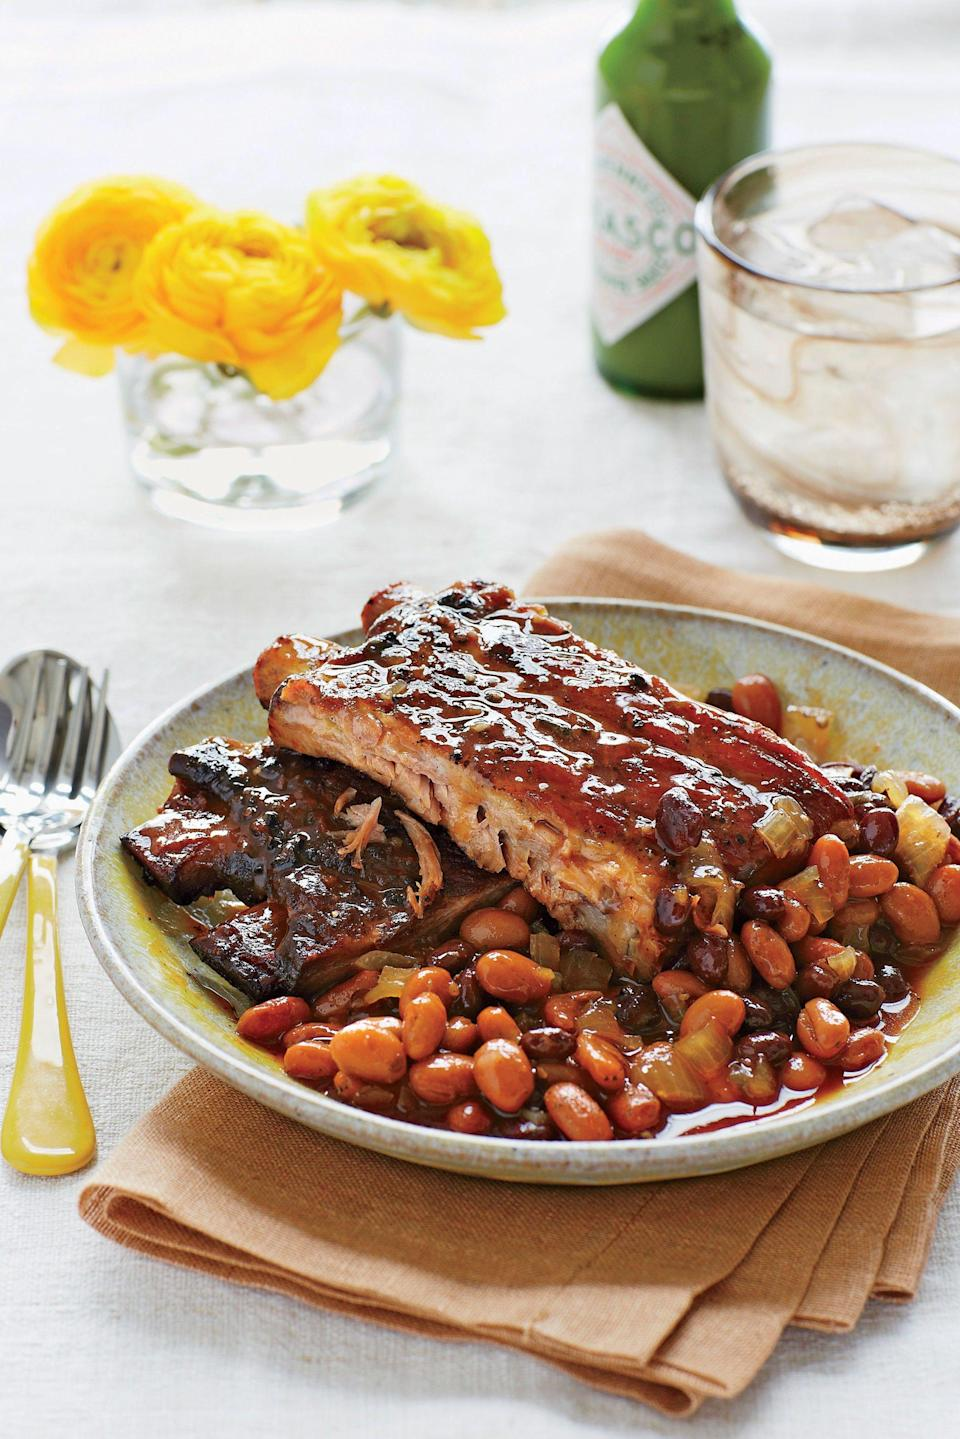 """<p><strong>Recipe:</strong> <a href=""""http://www.myrecipes.com/recipe/spicy-sweet-ribs-beans-10000000392326/"""" rel=""""nofollow noopener"""" target=""""_blank"""" data-ylk=""""slk:Spicy-Sweet Ribs and Beans"""" class=""""link rapid-noclick-resp""""><strong>Spicy-Sweet Ribs and Beans</strong></a></p> <p>Slow cookers don't brown food, so here we broil the ribs for extra flavor before adding them to the pot. Serve with cornbread and a simple green salad with creamy Italian or ranch dressing.</p>"""